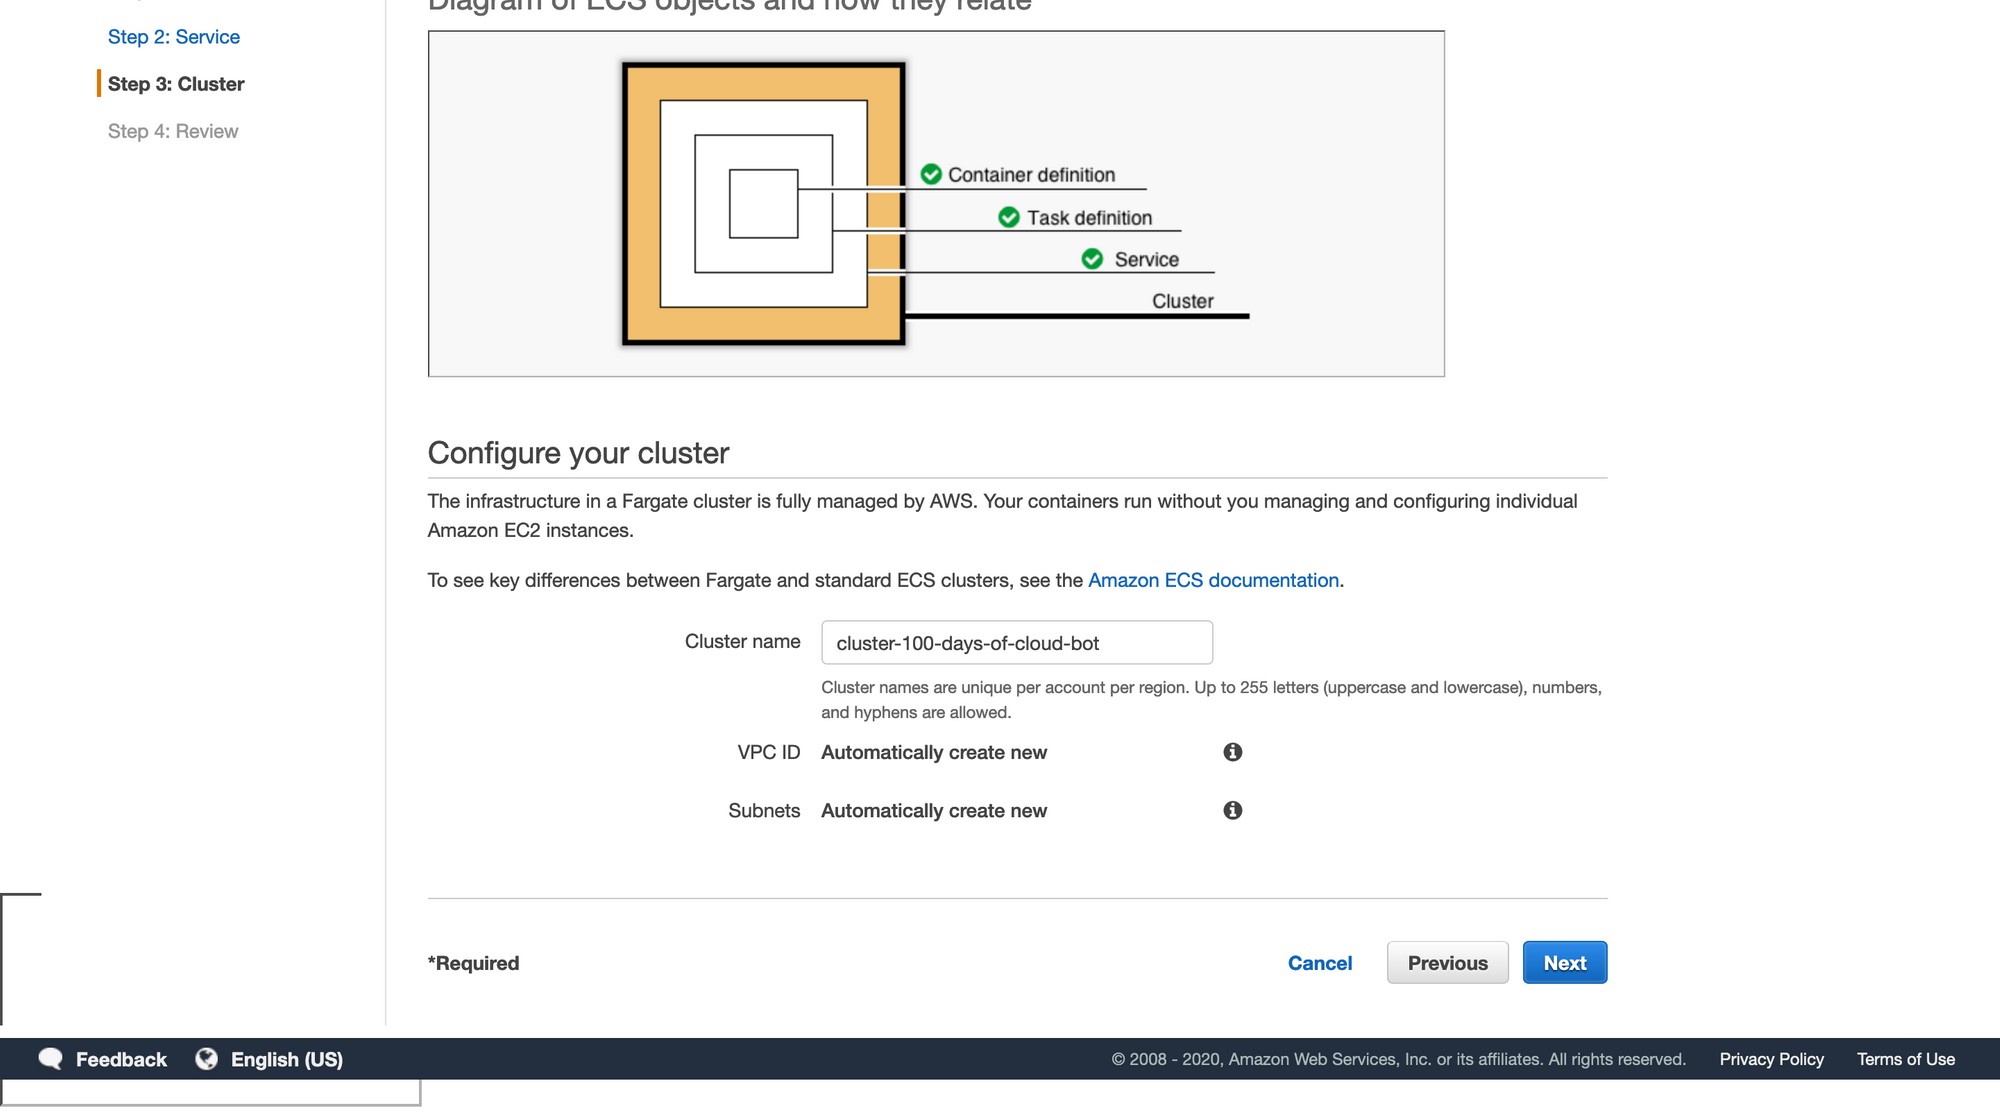 Configure your cluster